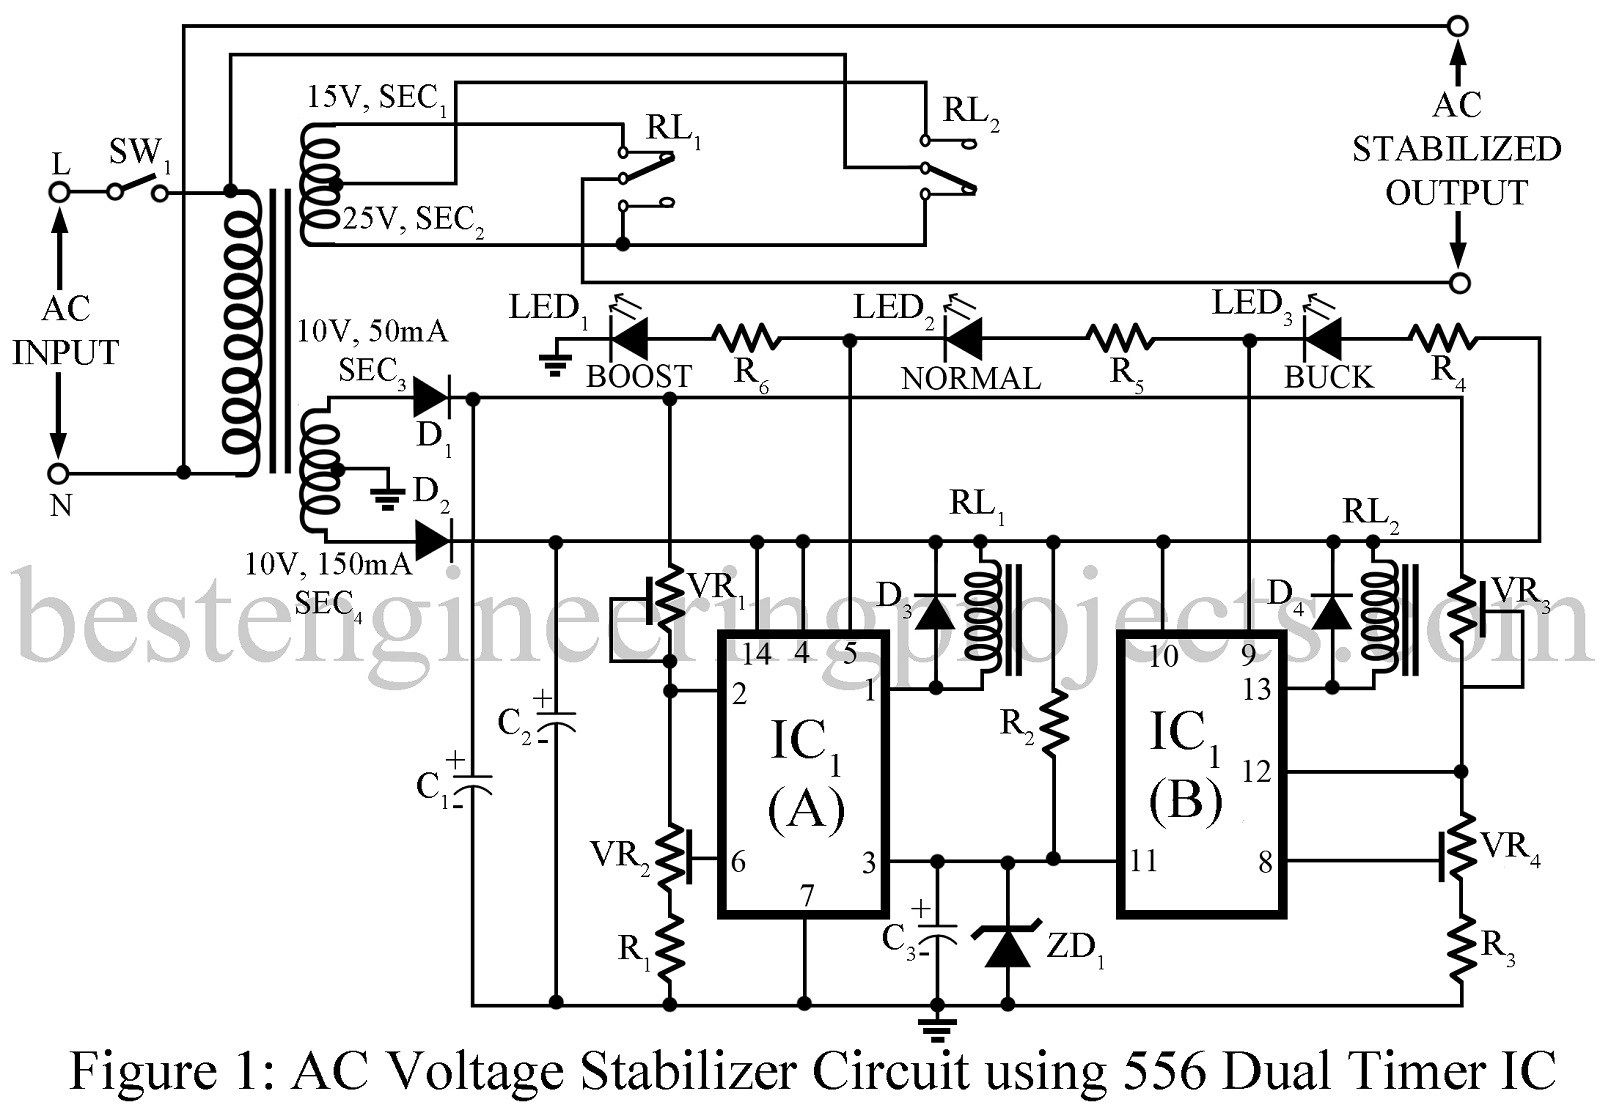 hight resolution of voltage stabilizer circuit diagram wiring diagrams automatic voltage stabilizer circuit diagram also ignition circuit